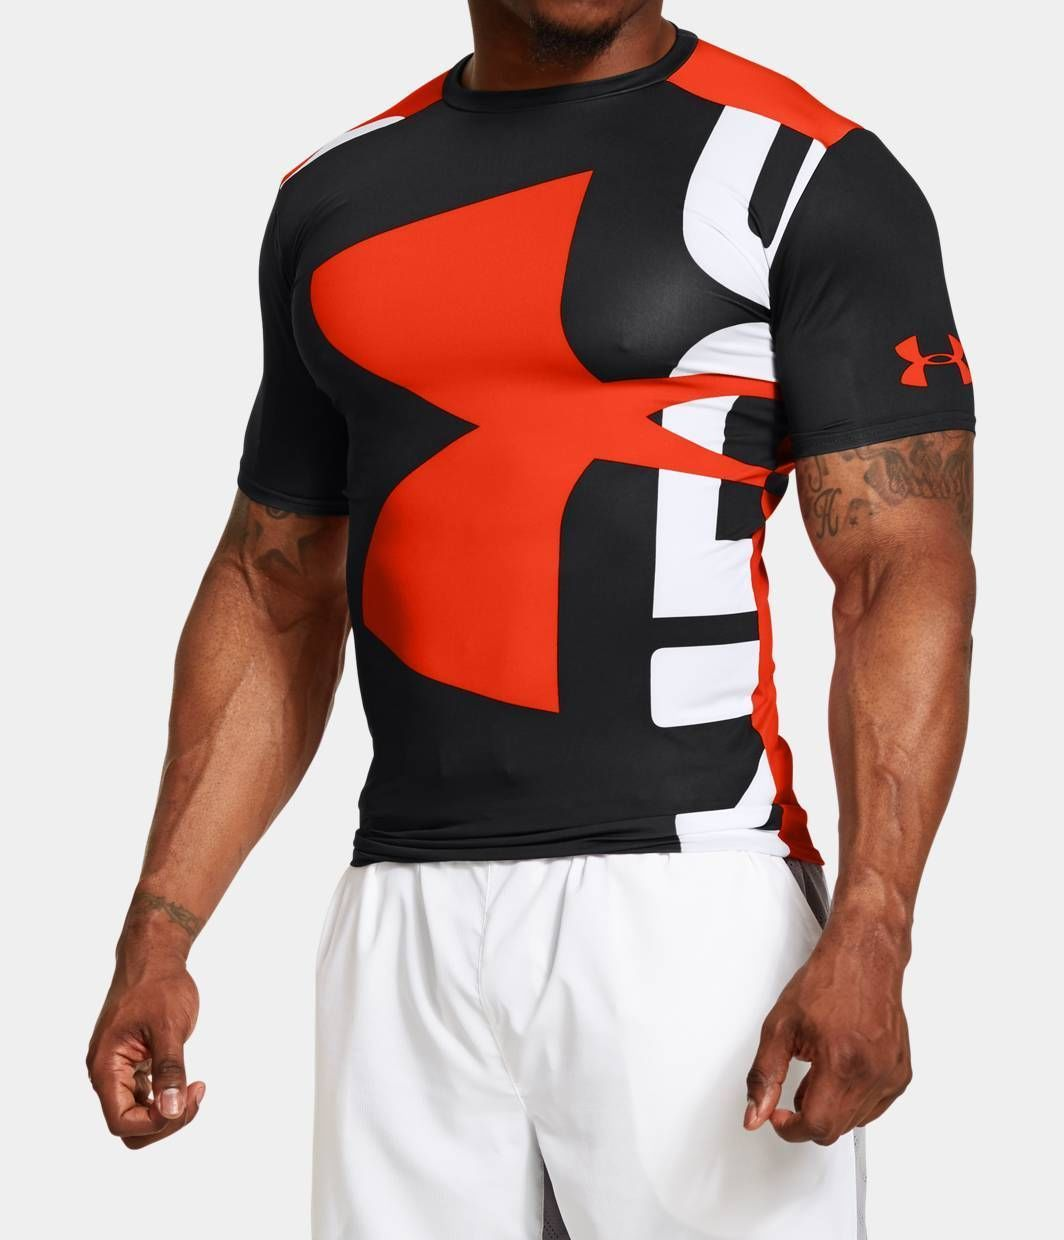 083fec4da94 Remera hombre Under Armour Men s UA Branded HeatGear Compression Short  Training Shirt Talle XL